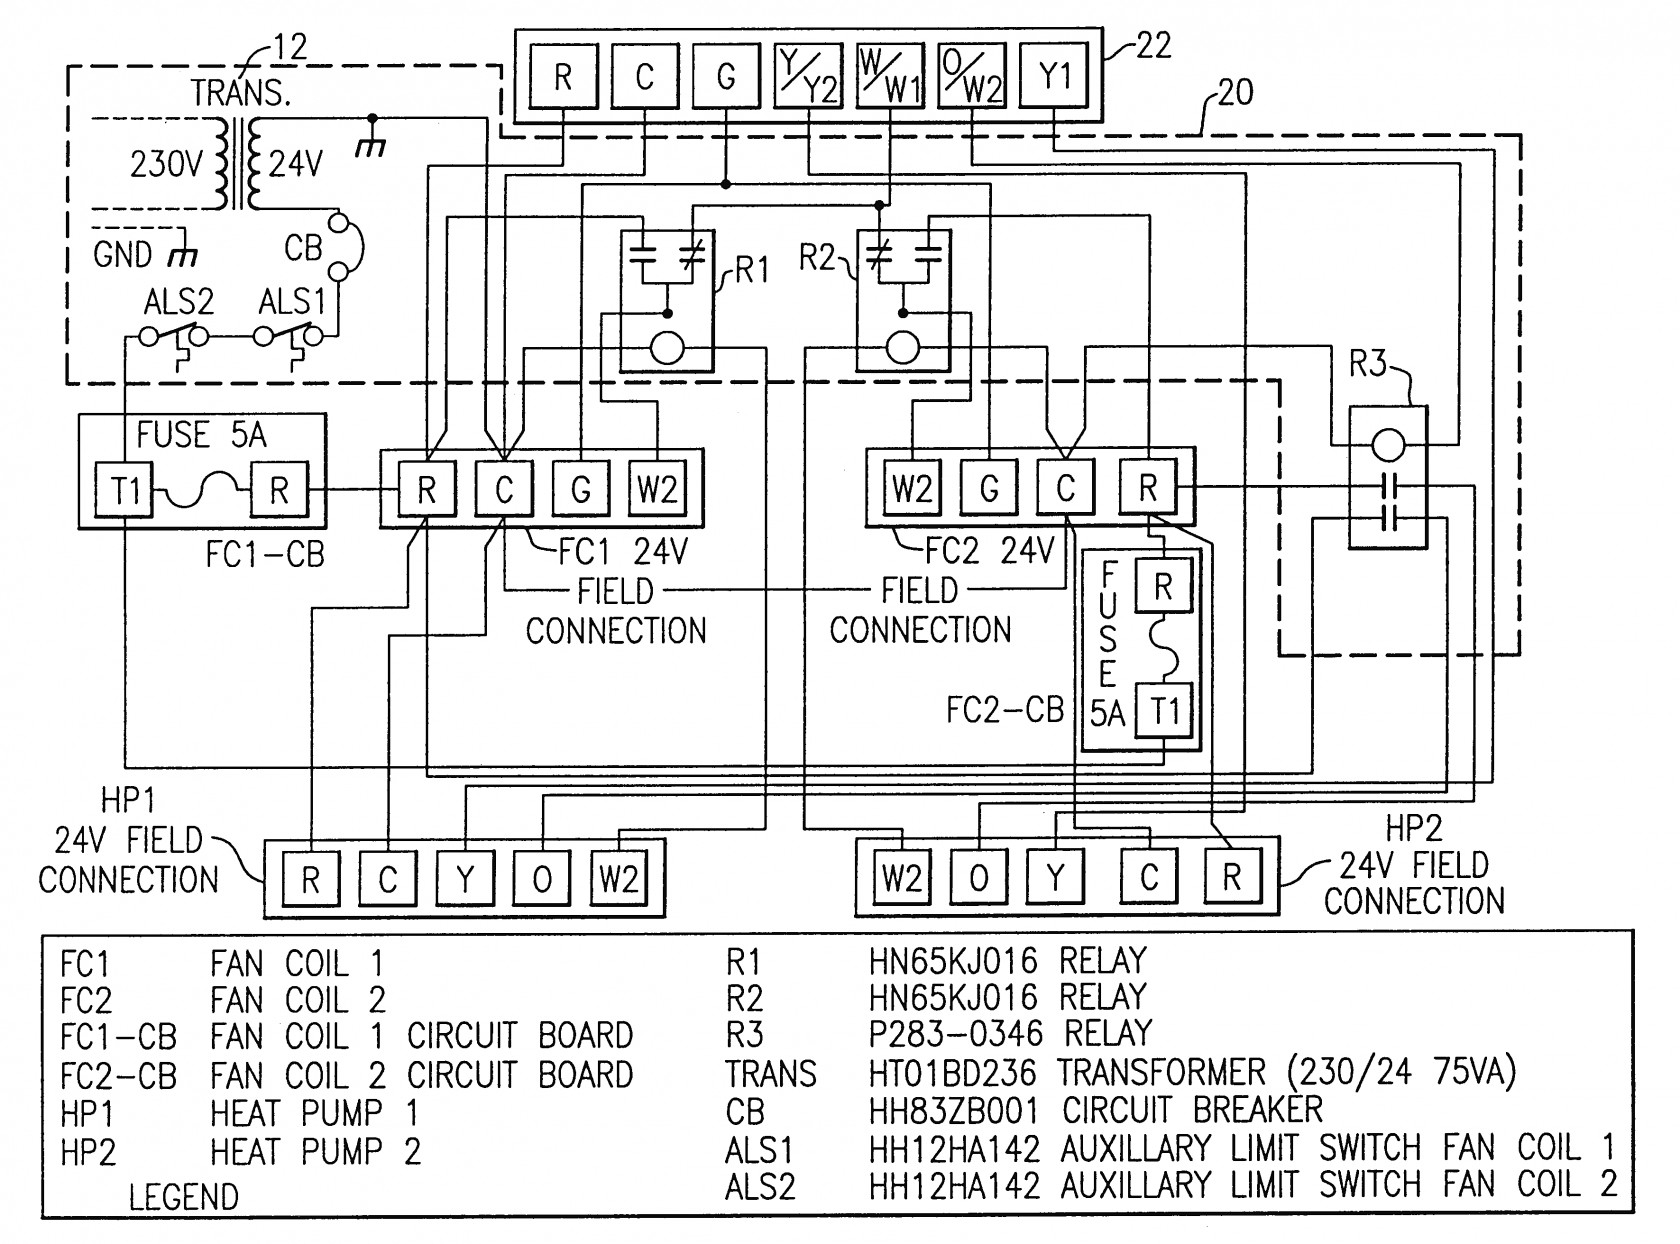 Generac 6333 Wiring Diagram Free Download 20 Kw Generator Collection Sample